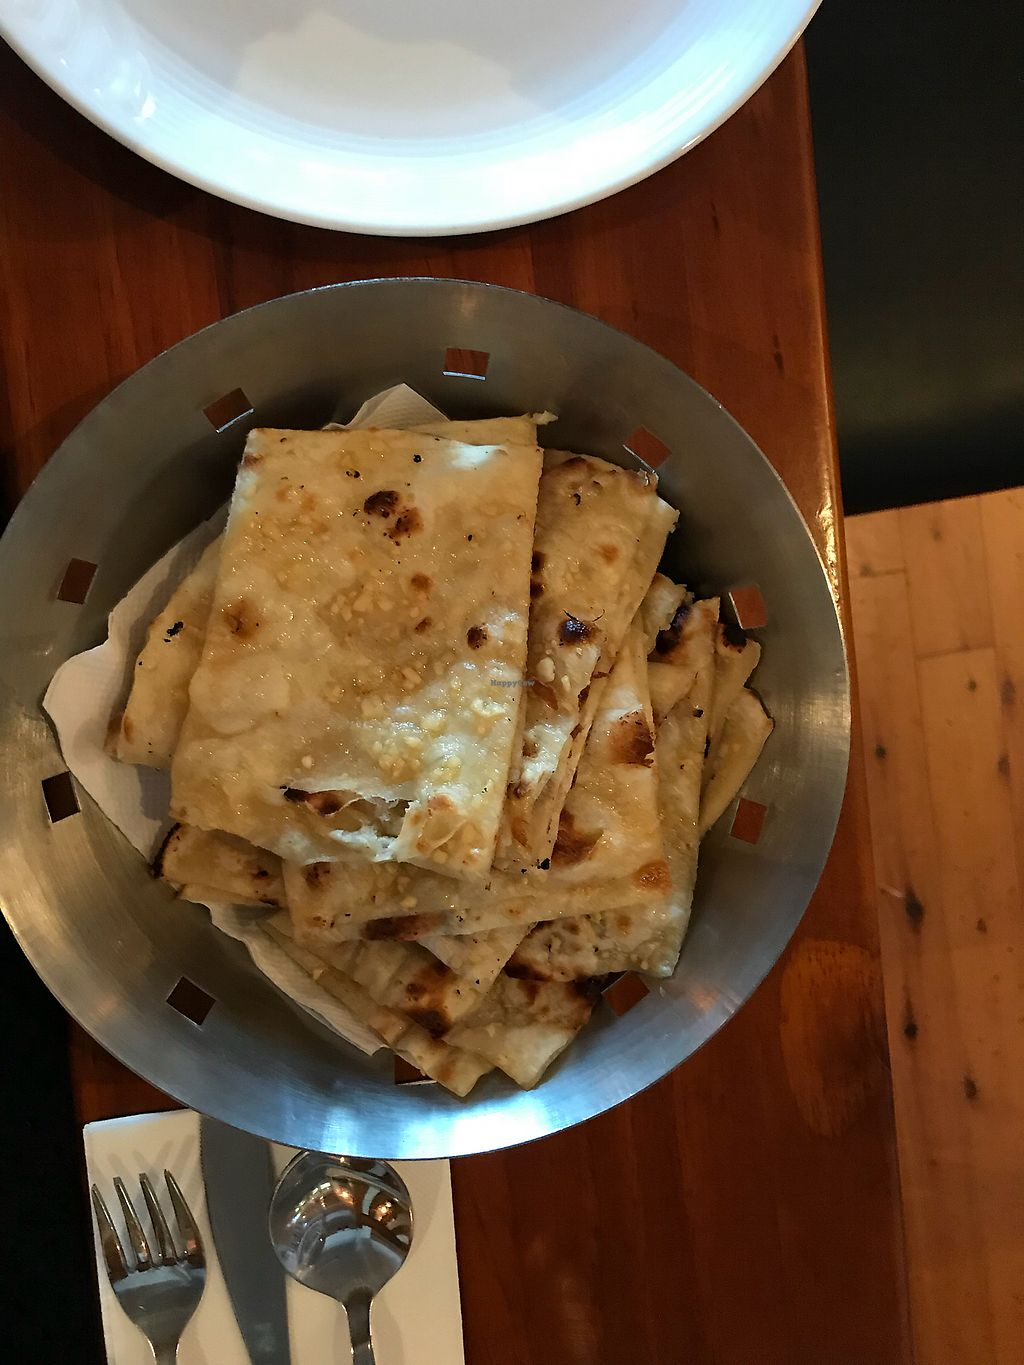 "Photo of Steam  by <a href=""/members/profile/SimoneC"">SimoneC</a> <br/>2 x Garlic Naan - $4 each portion <br/> February 24, 2018  - <a href='/contact/abuse/image/92018/363044'>Report</a>"